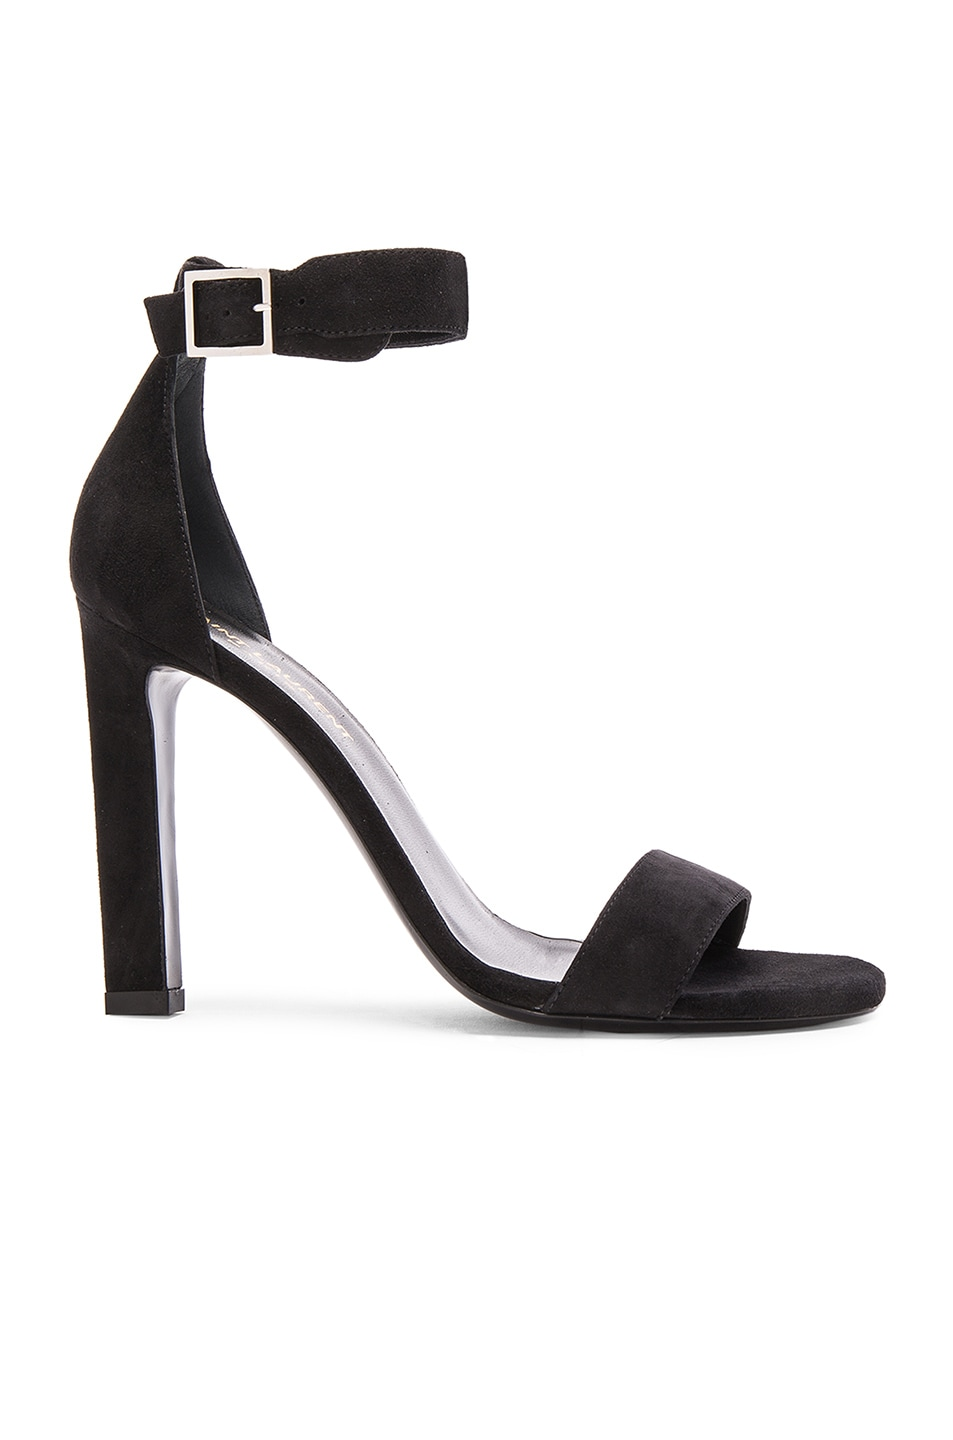 Image 1 of Saint Laurent Suede Grace Ankle Strap Heels in Black